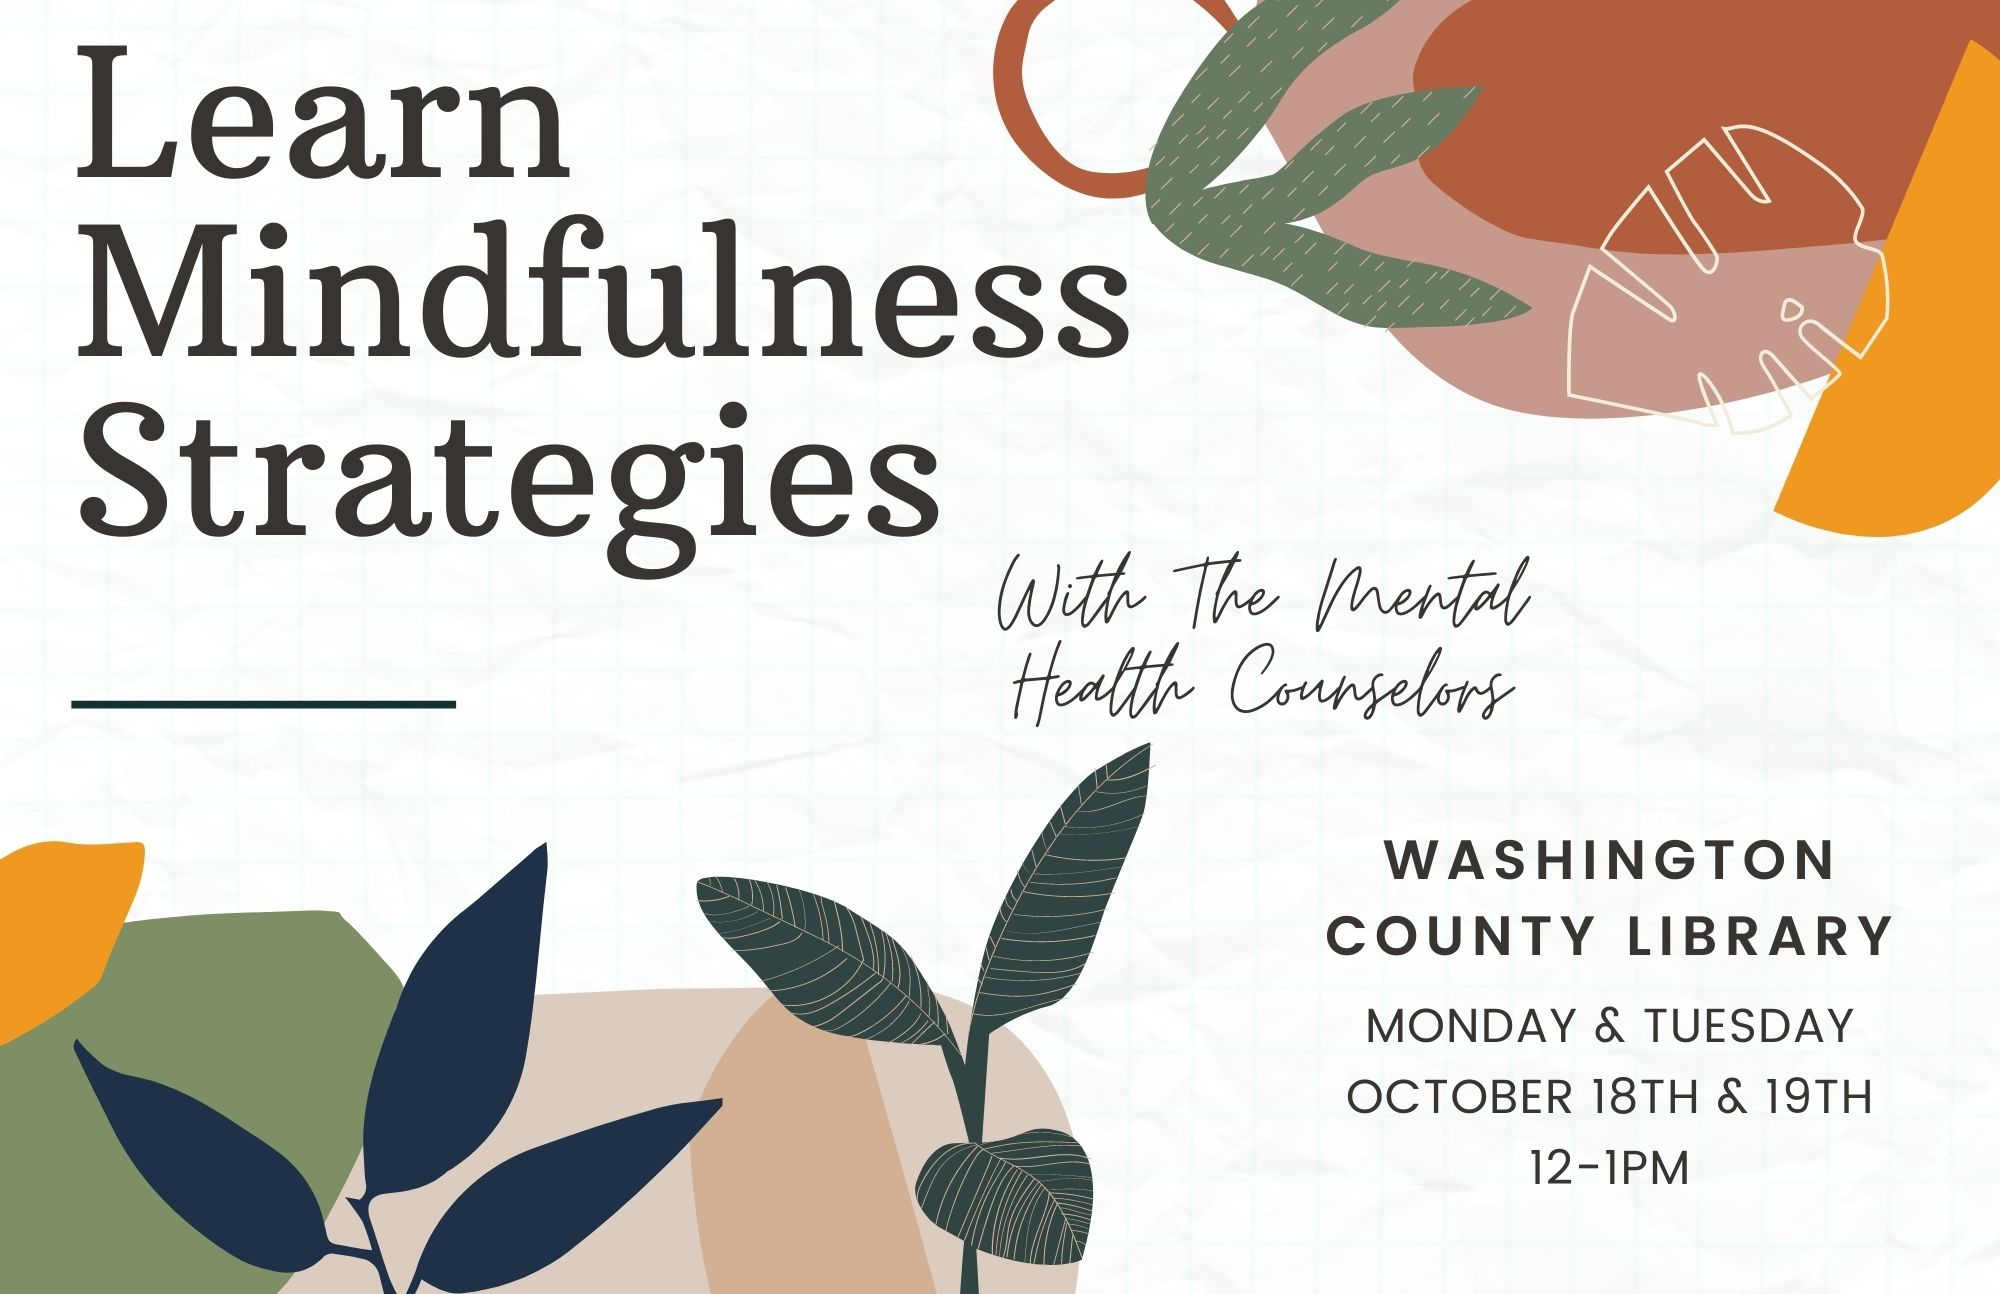 Details For Event 20499 – Learn Mindfulness Strategies